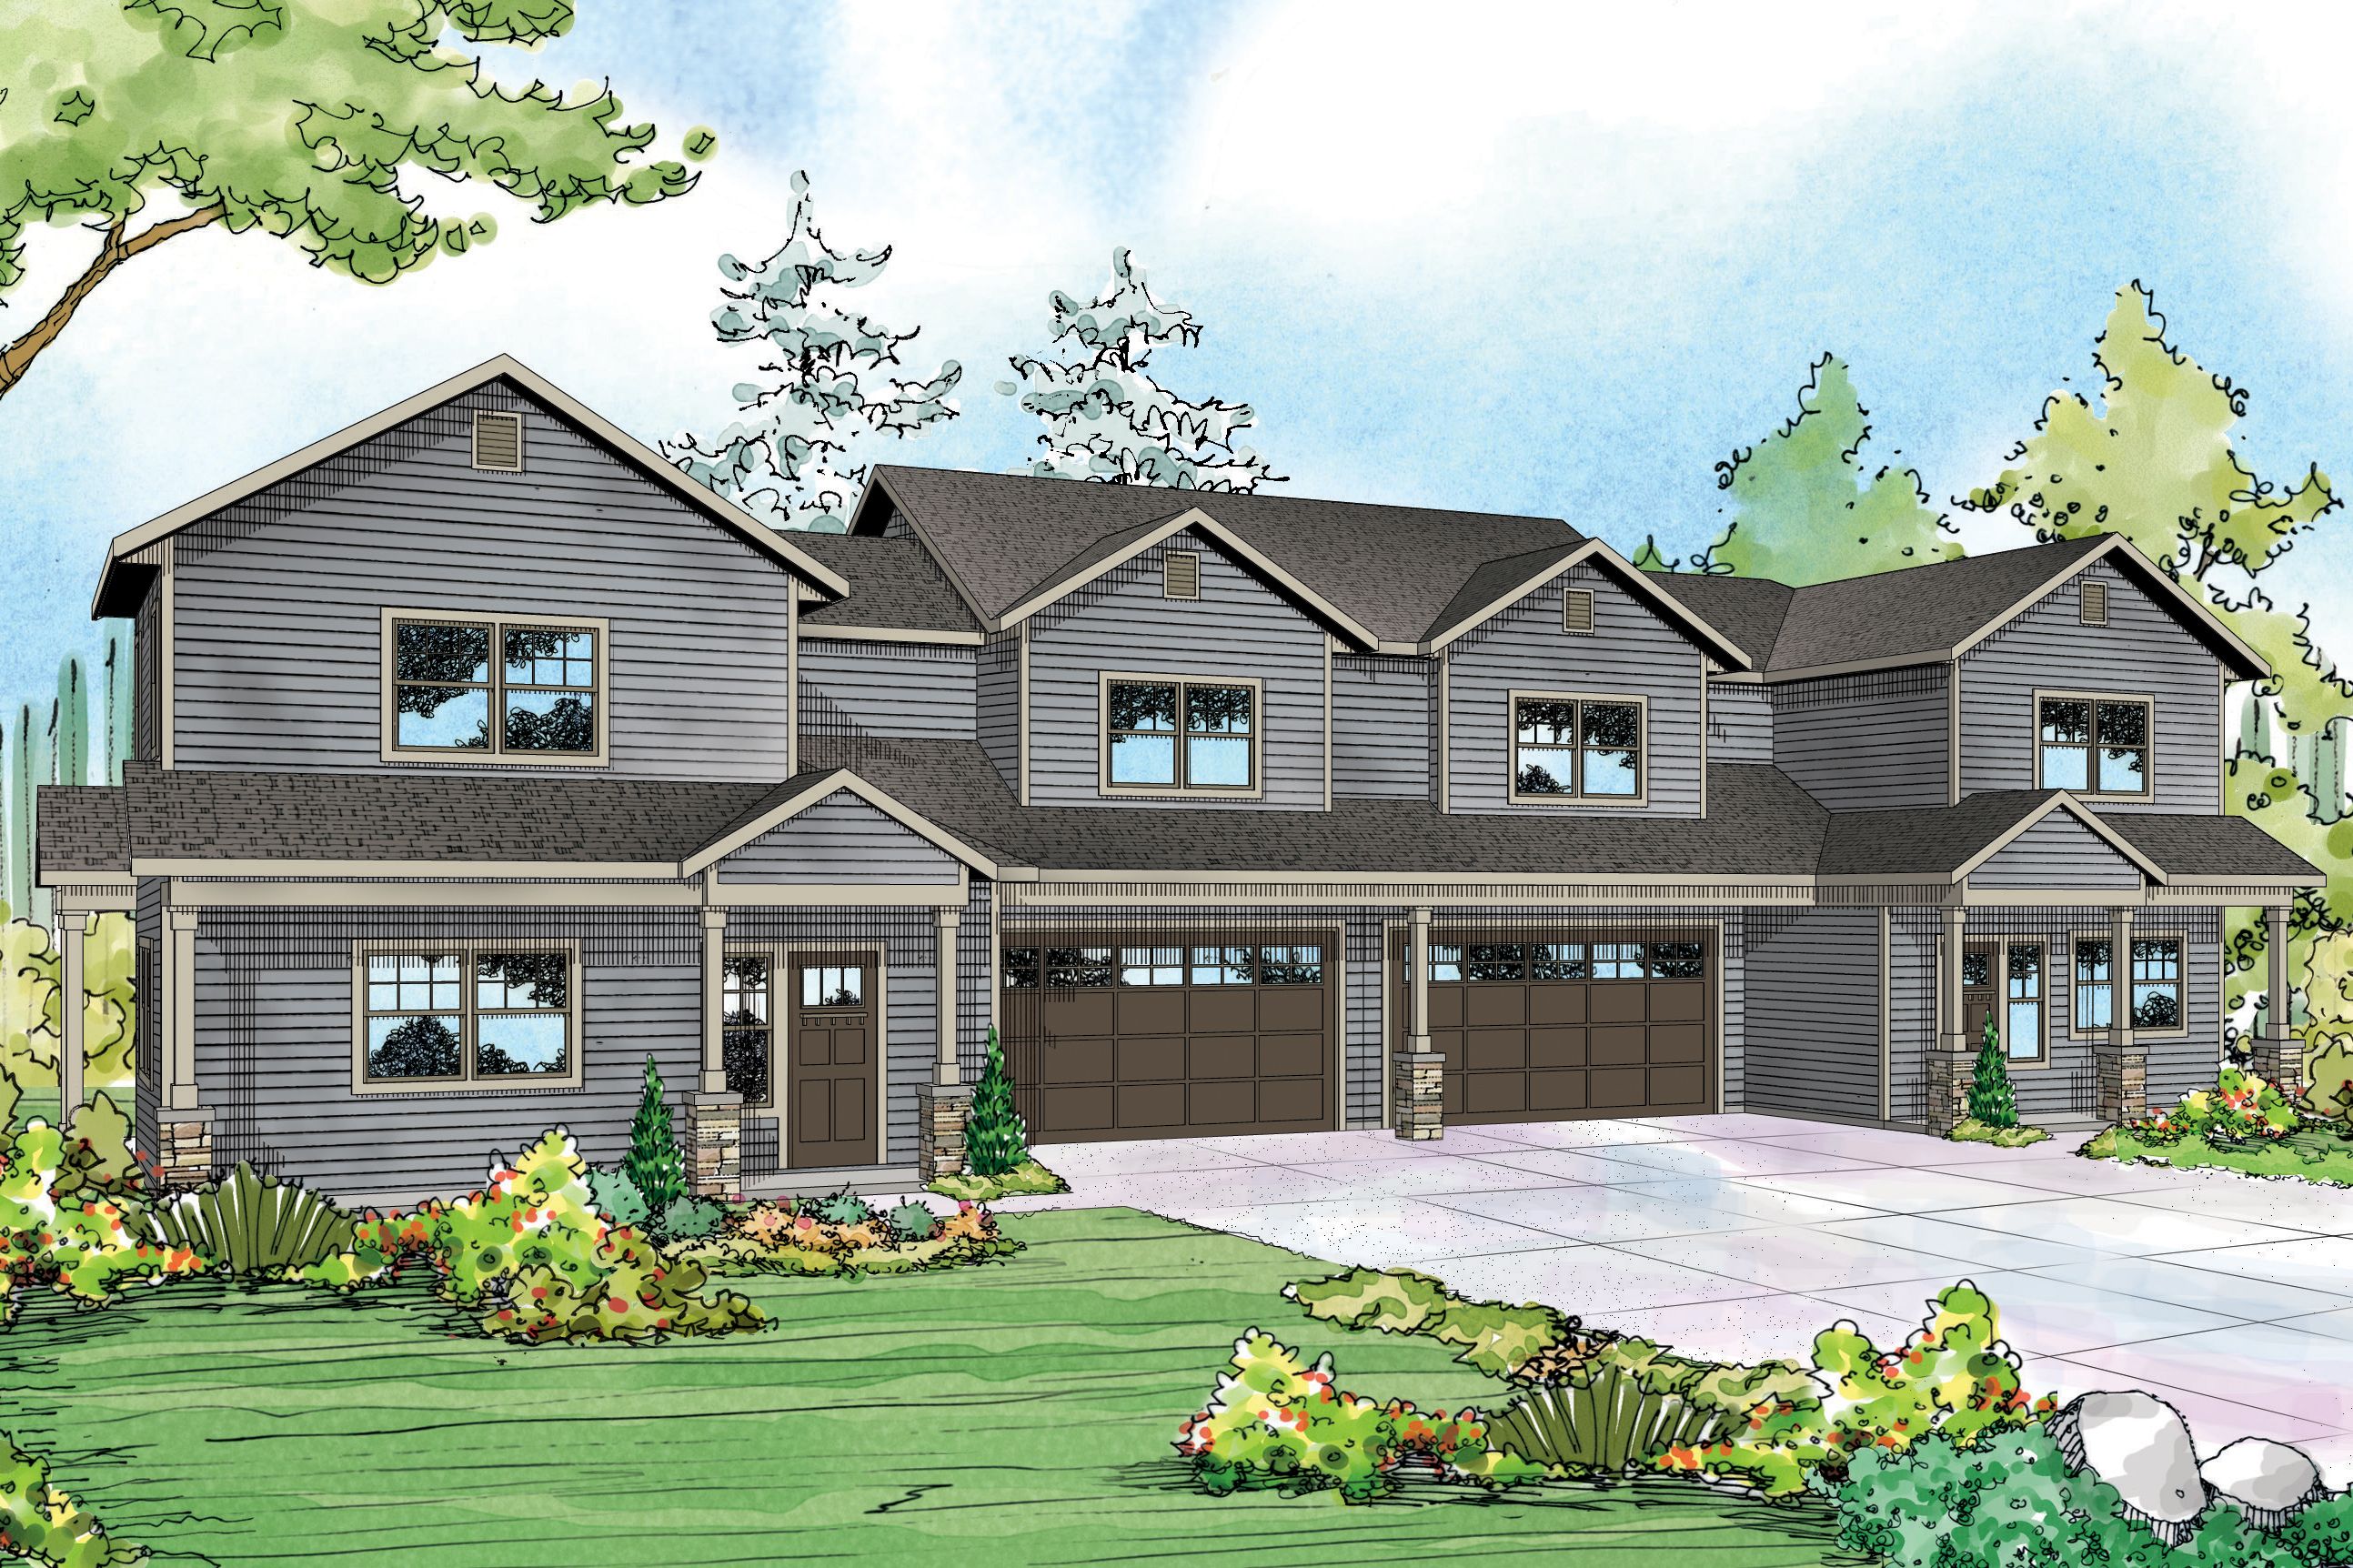 Duplex Plan, Country Duplex Plan, Warrendale 60-036